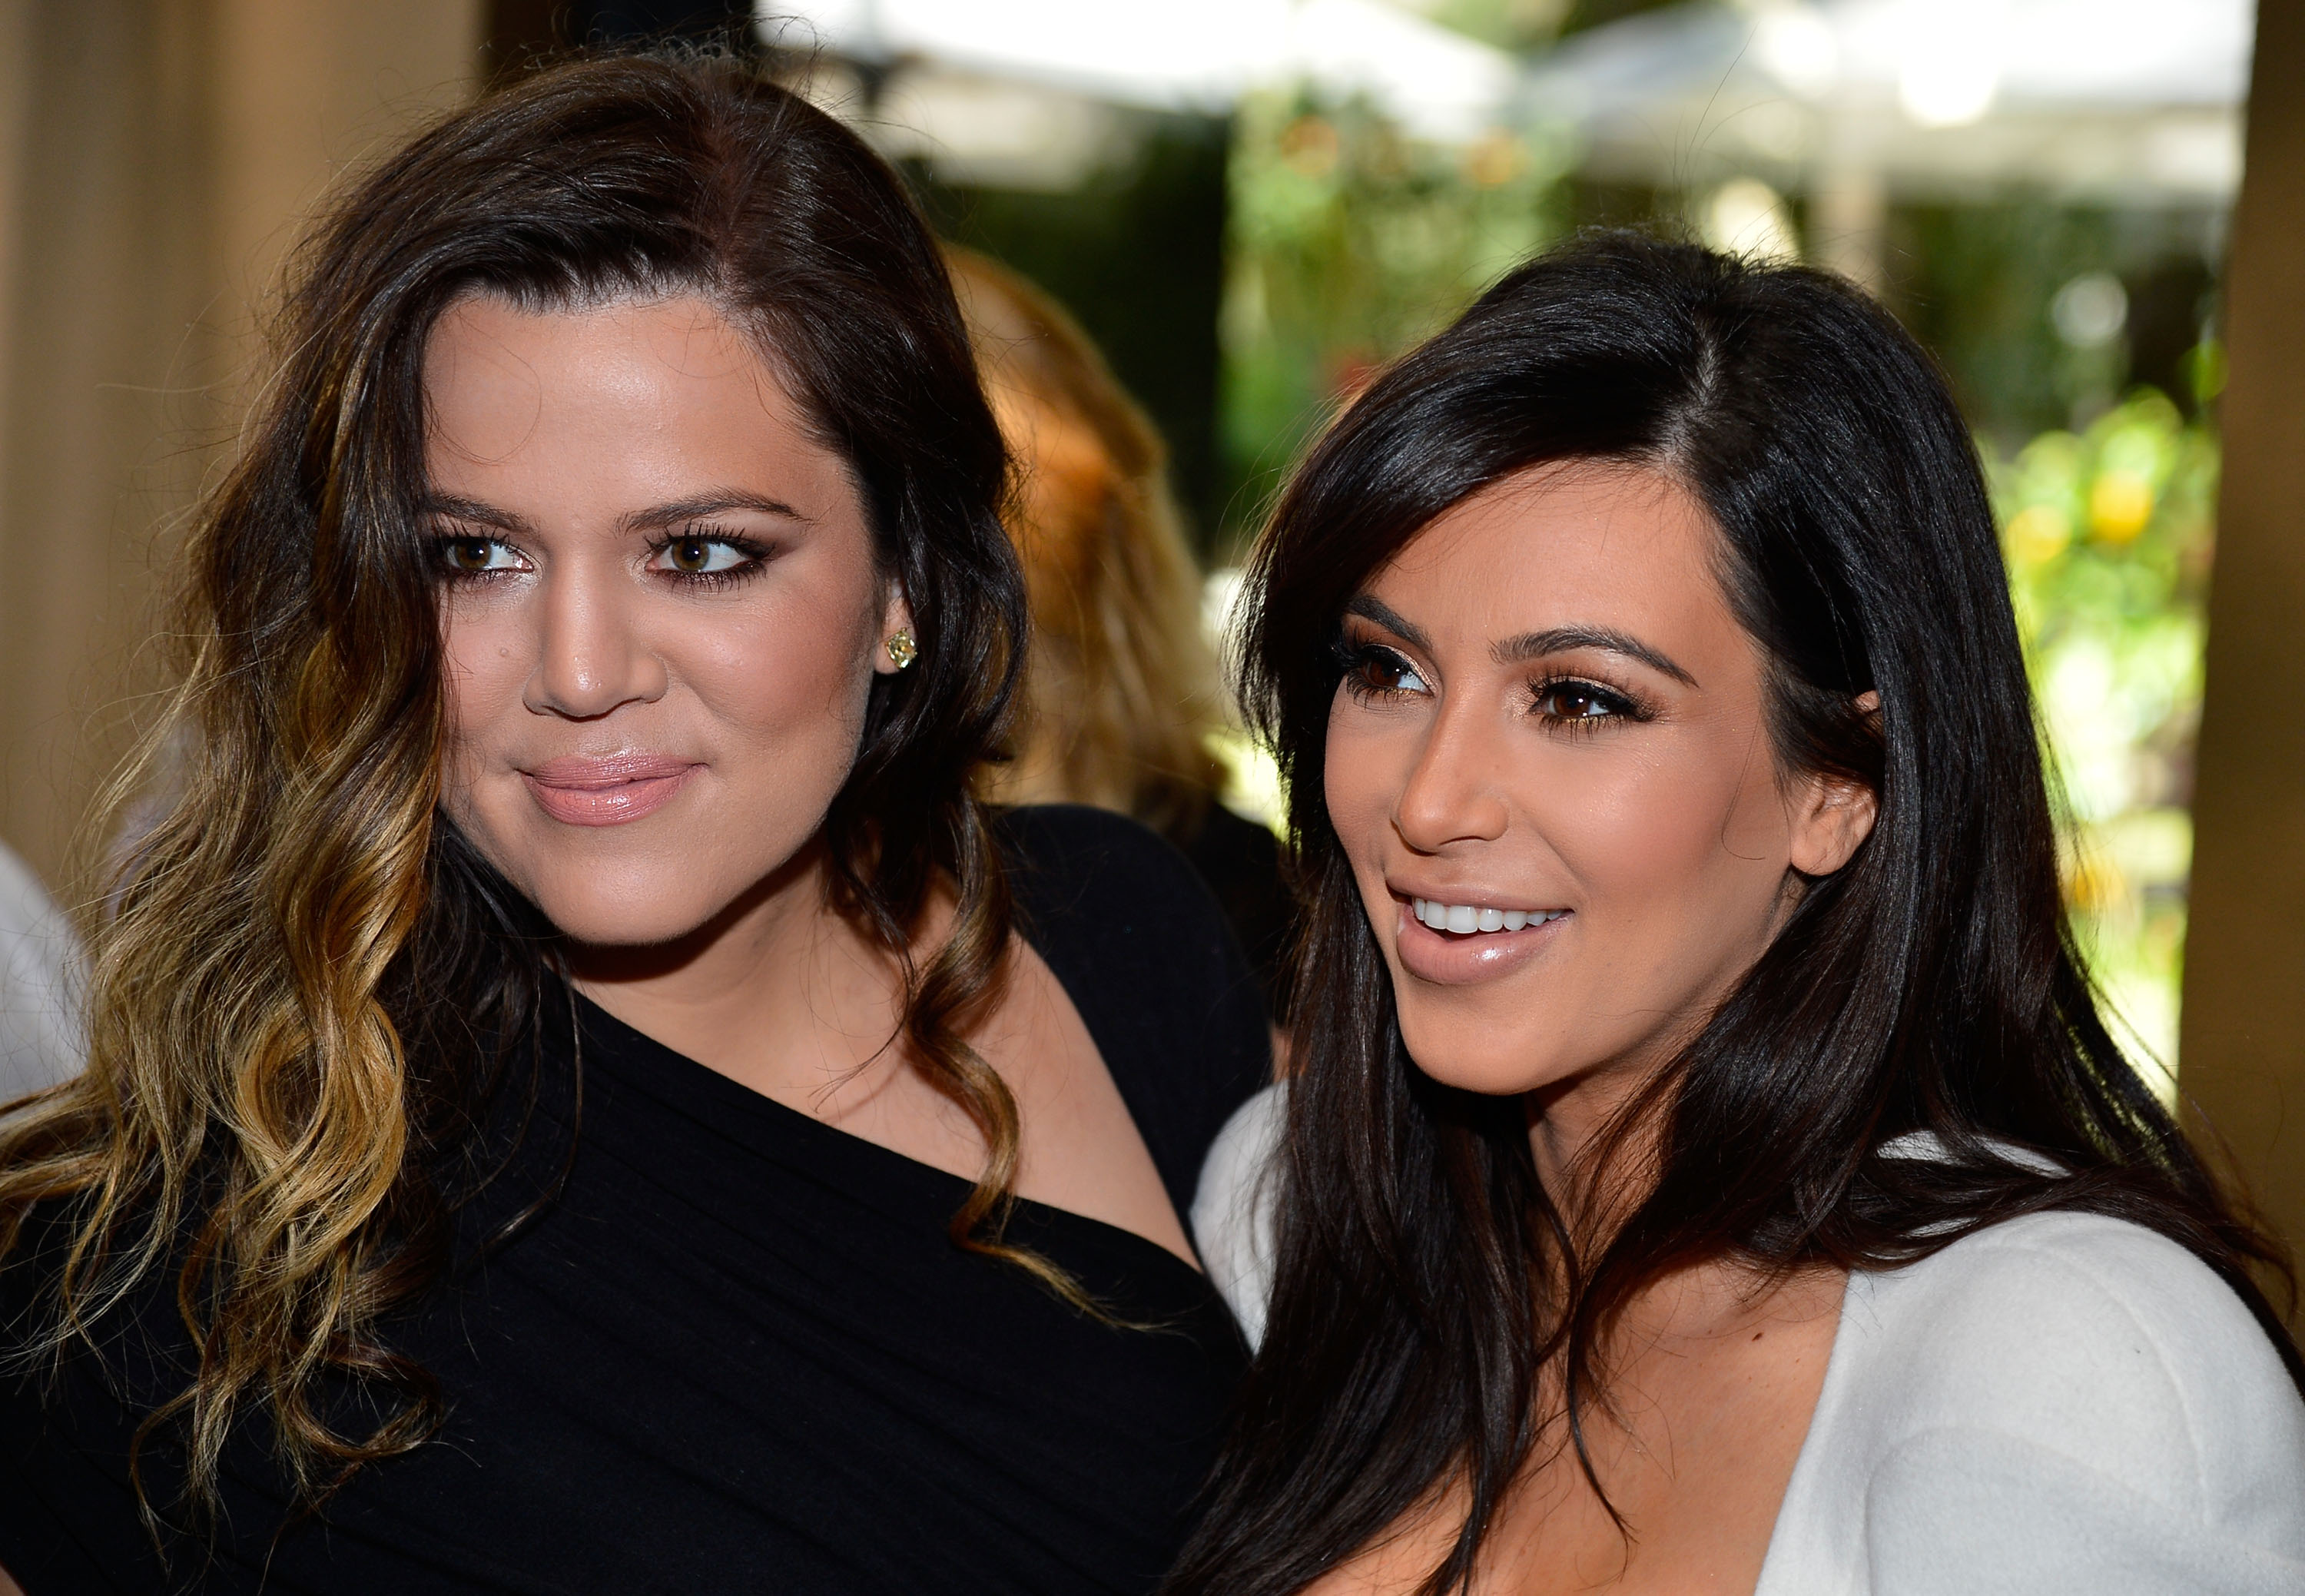 Kardashian has 'zero desire to resume old life'